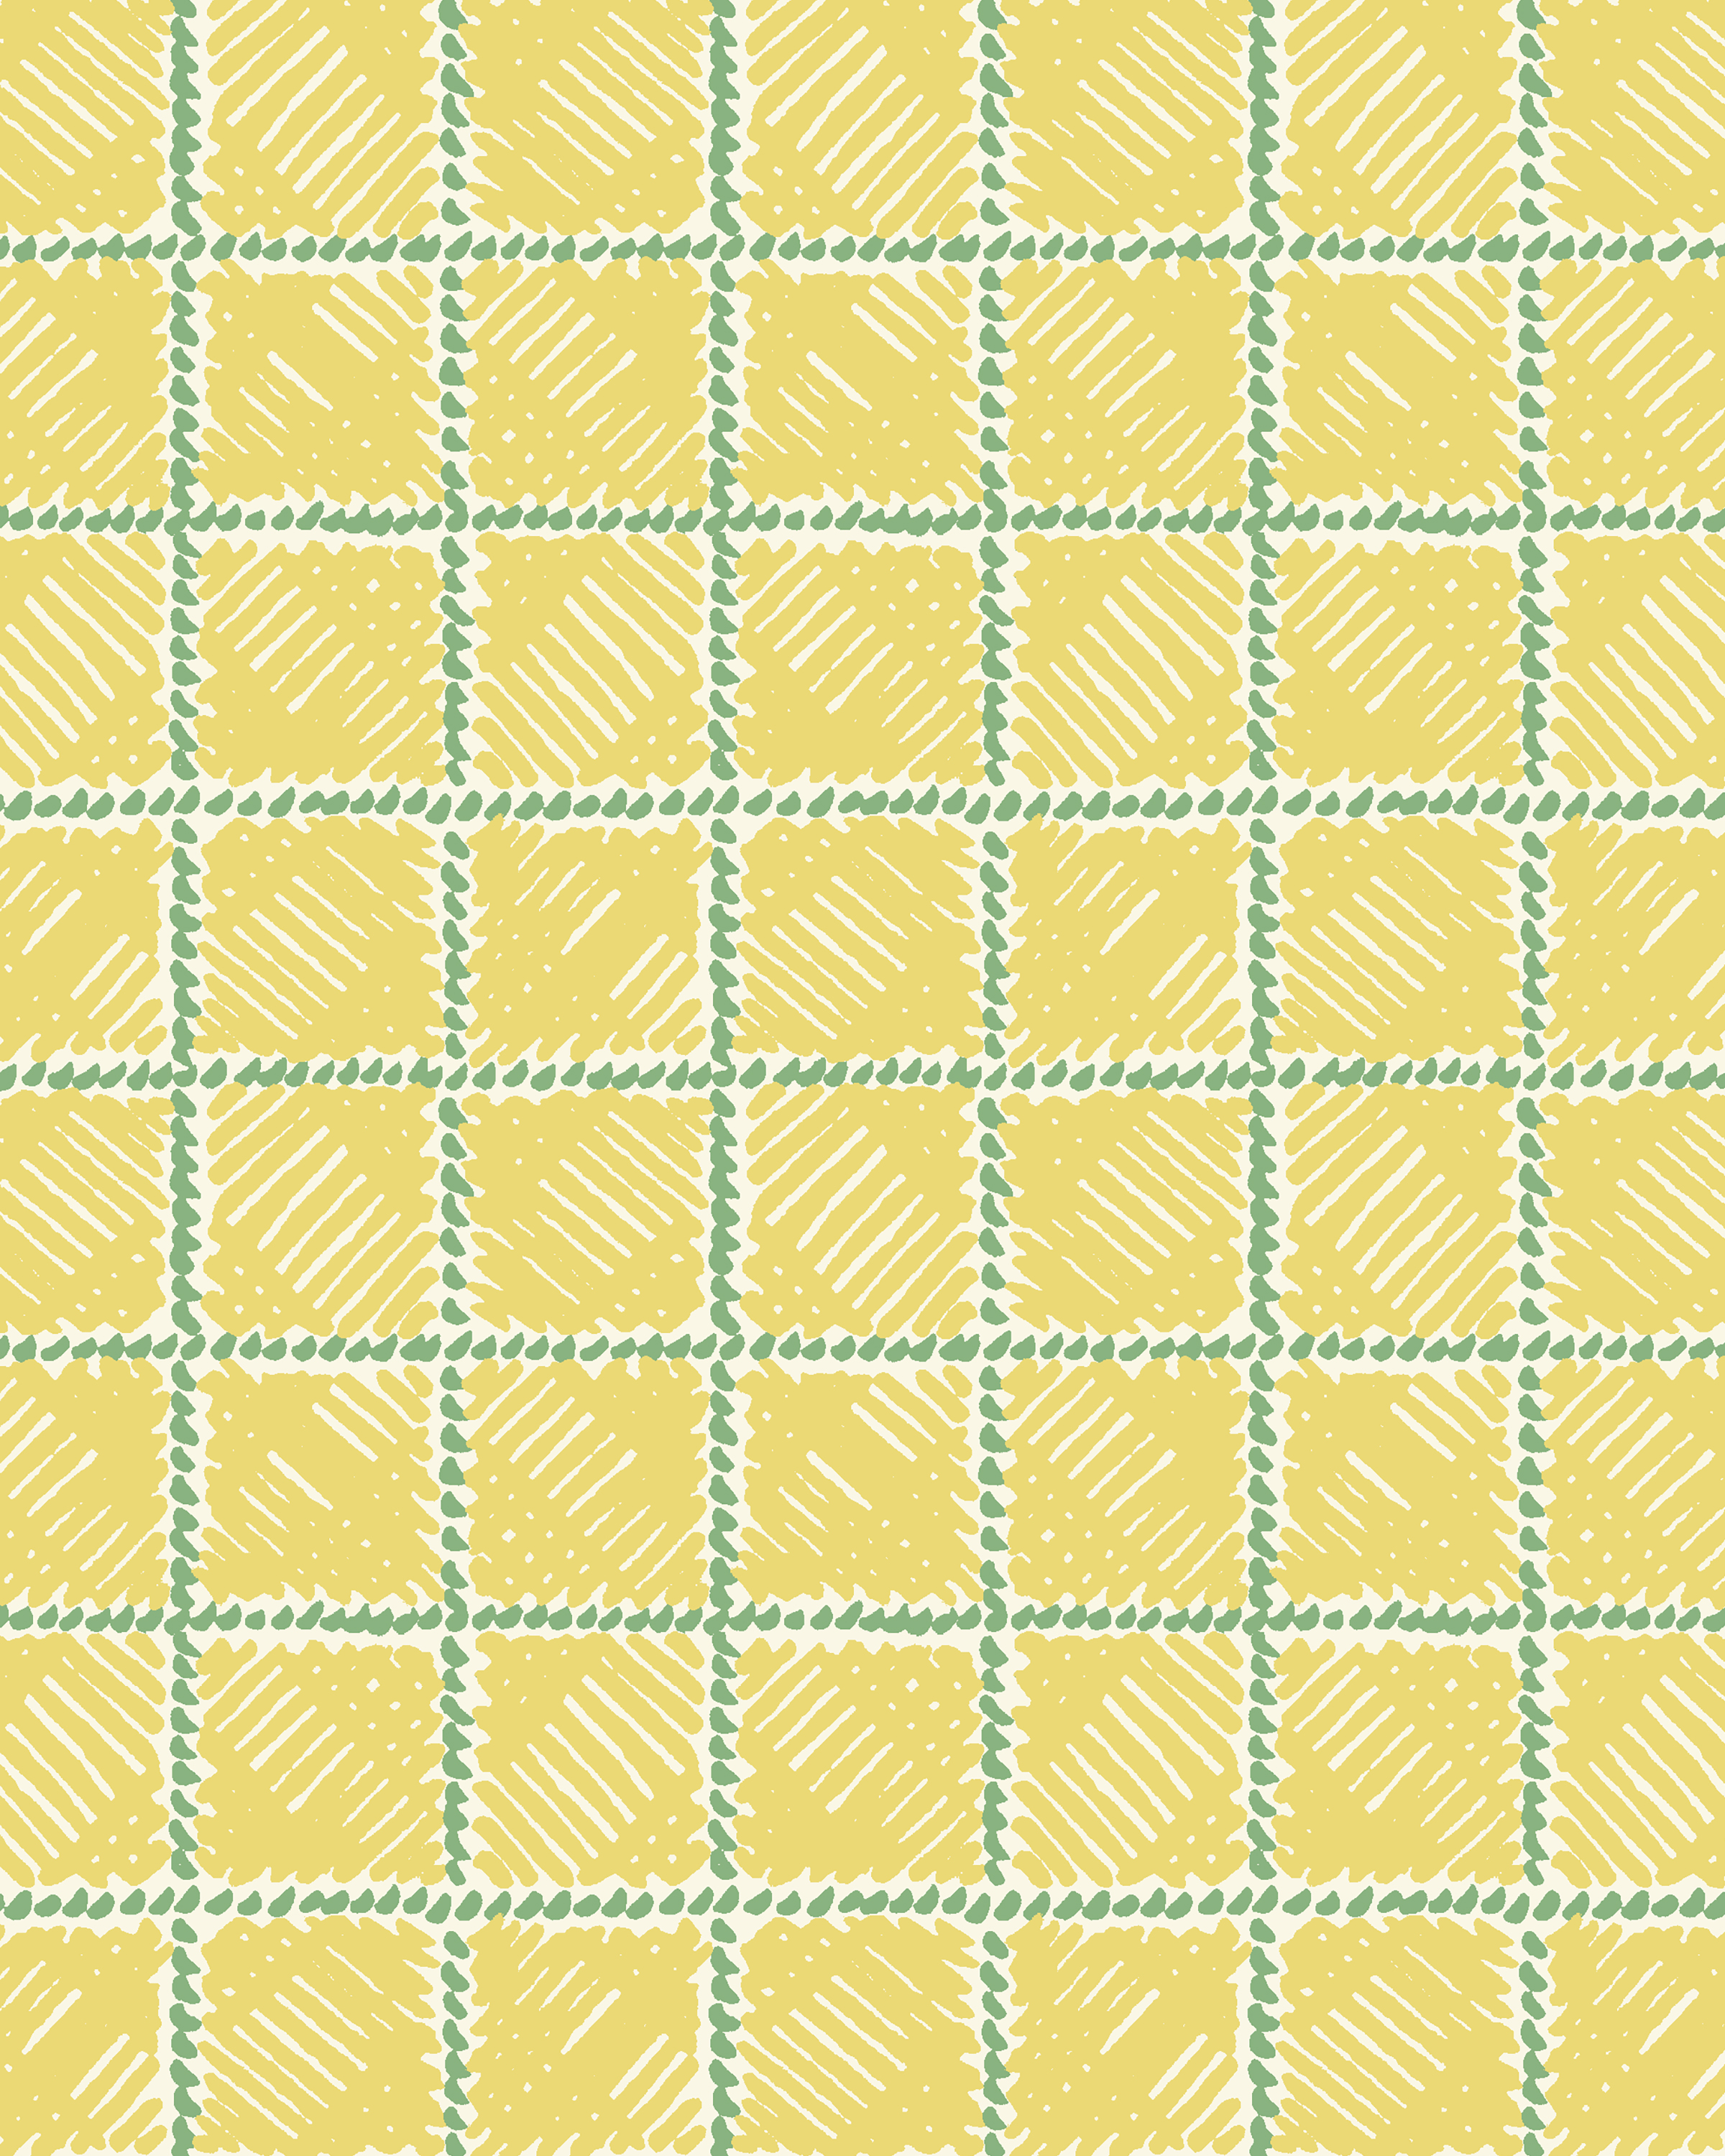 Rattan Grid Repeat Yellow.jpg